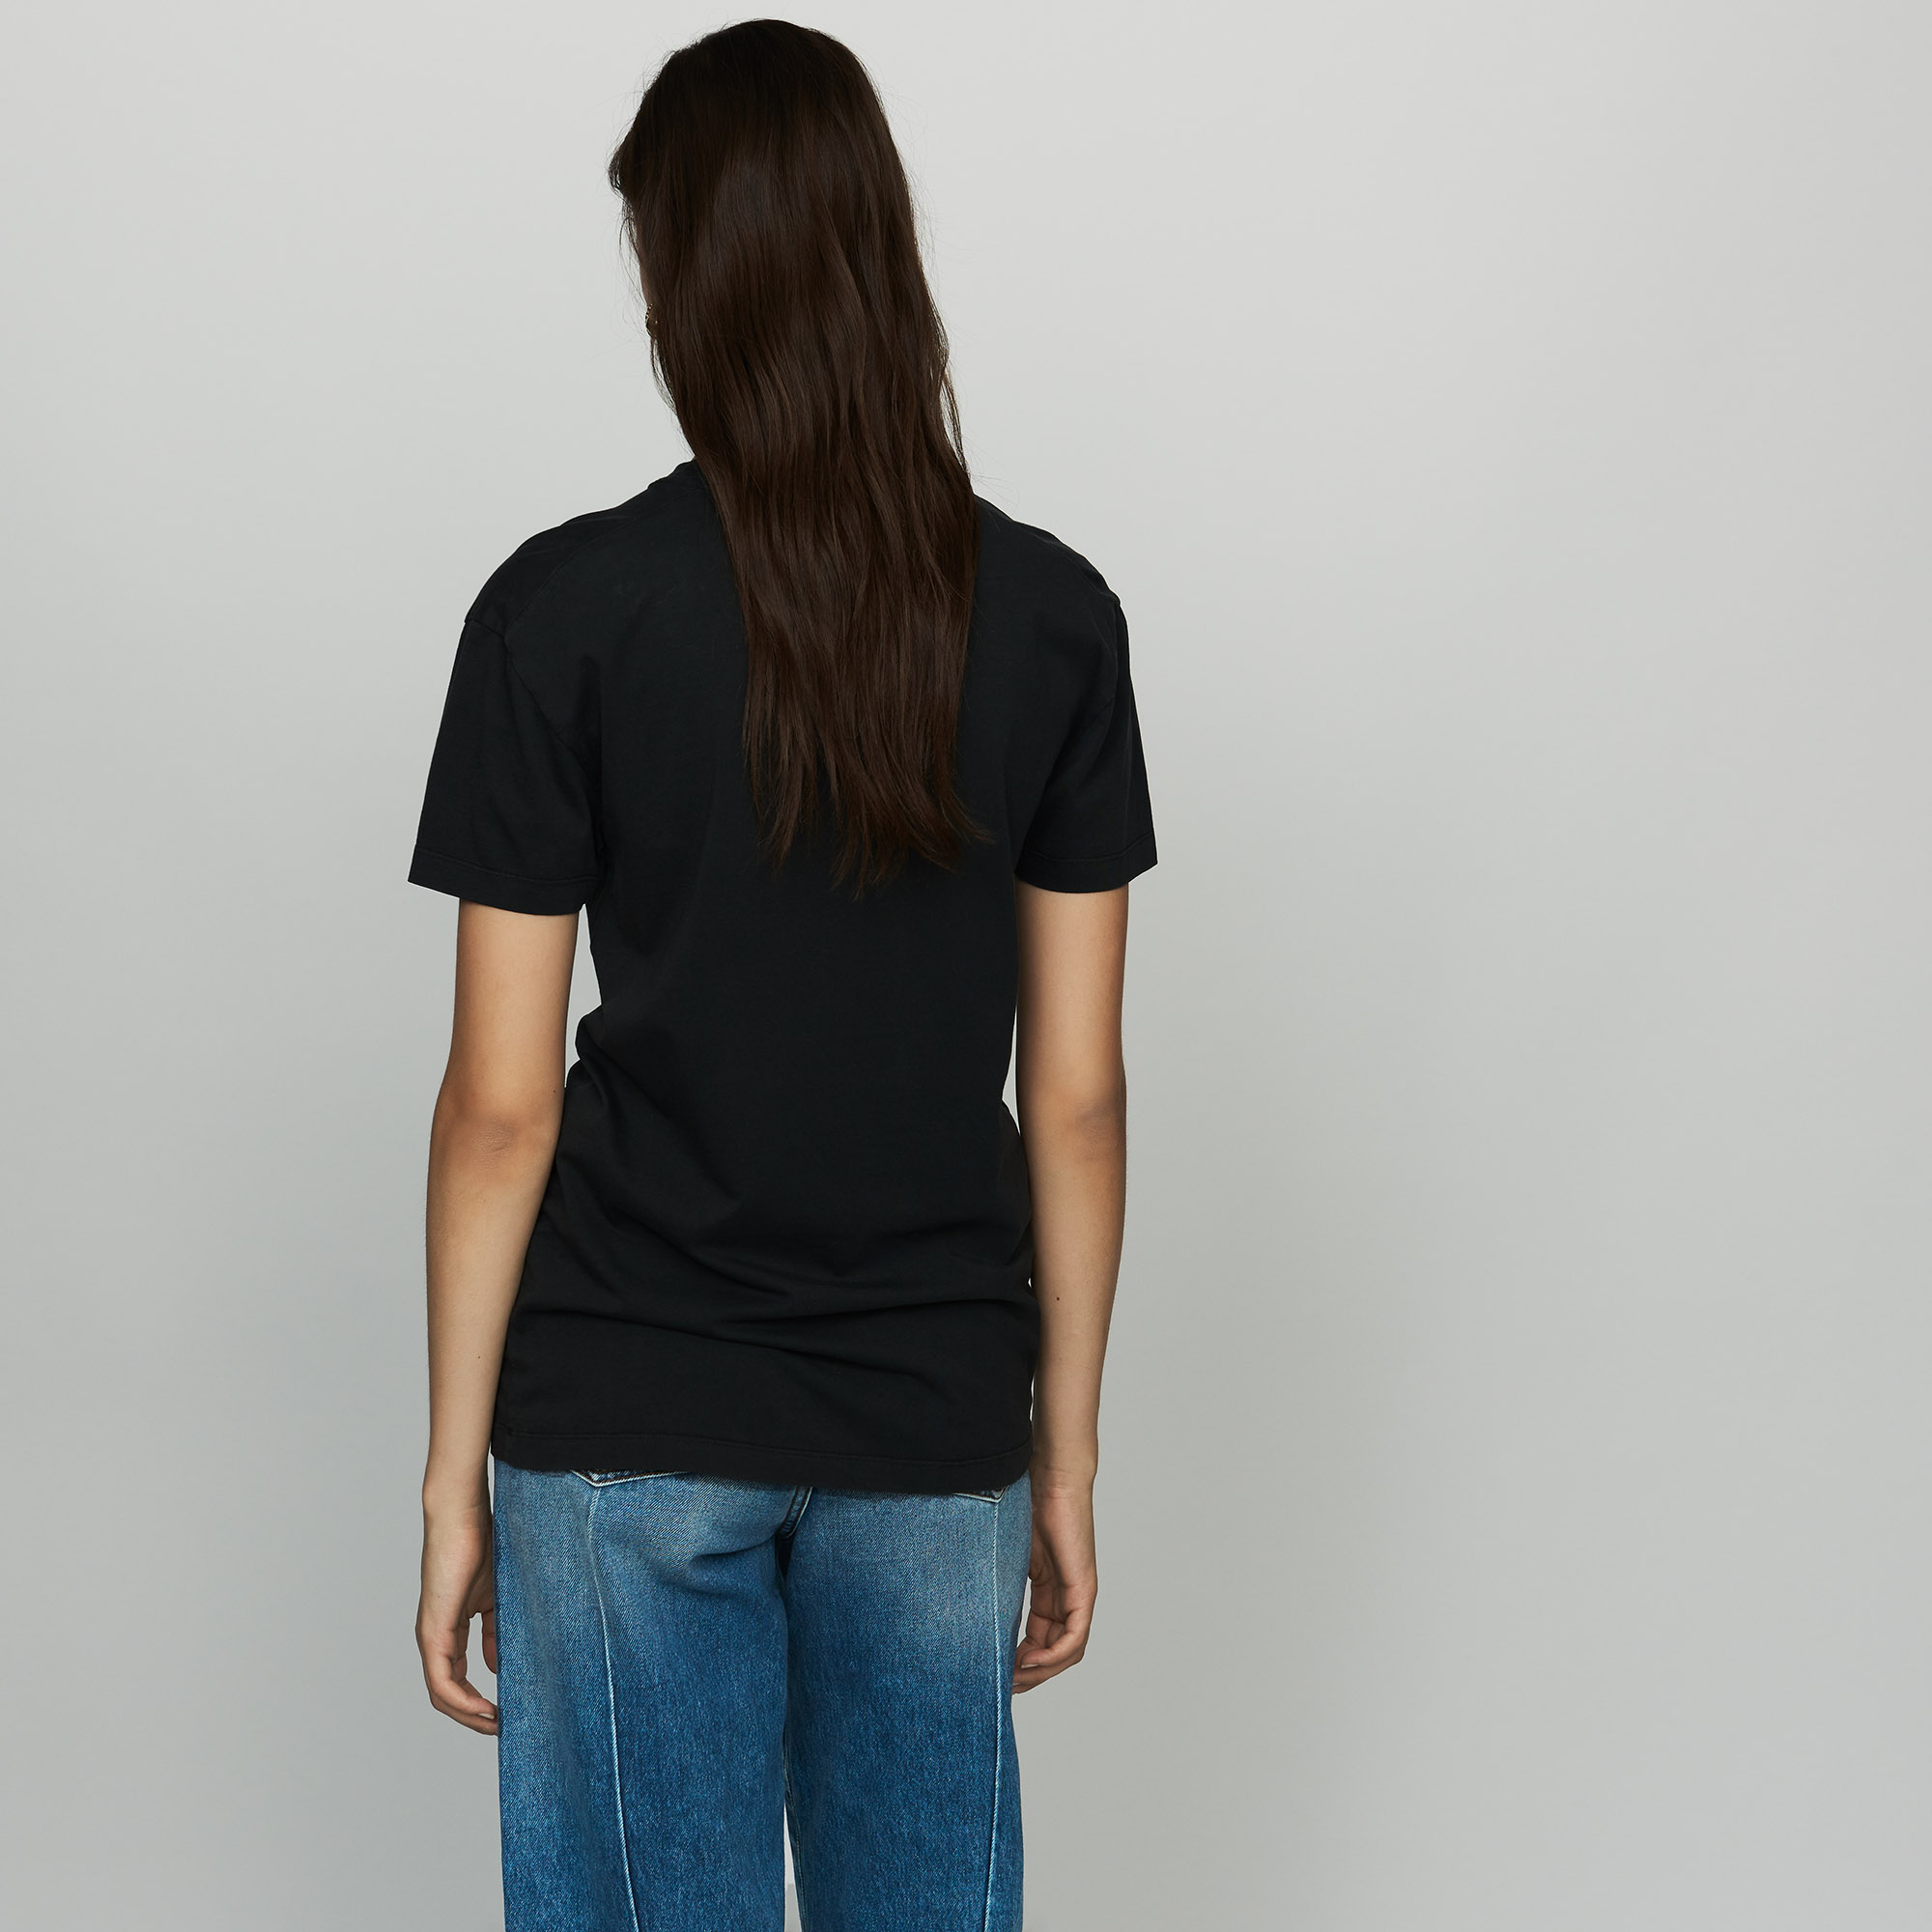 Cotton Printed T-Shirt - Black